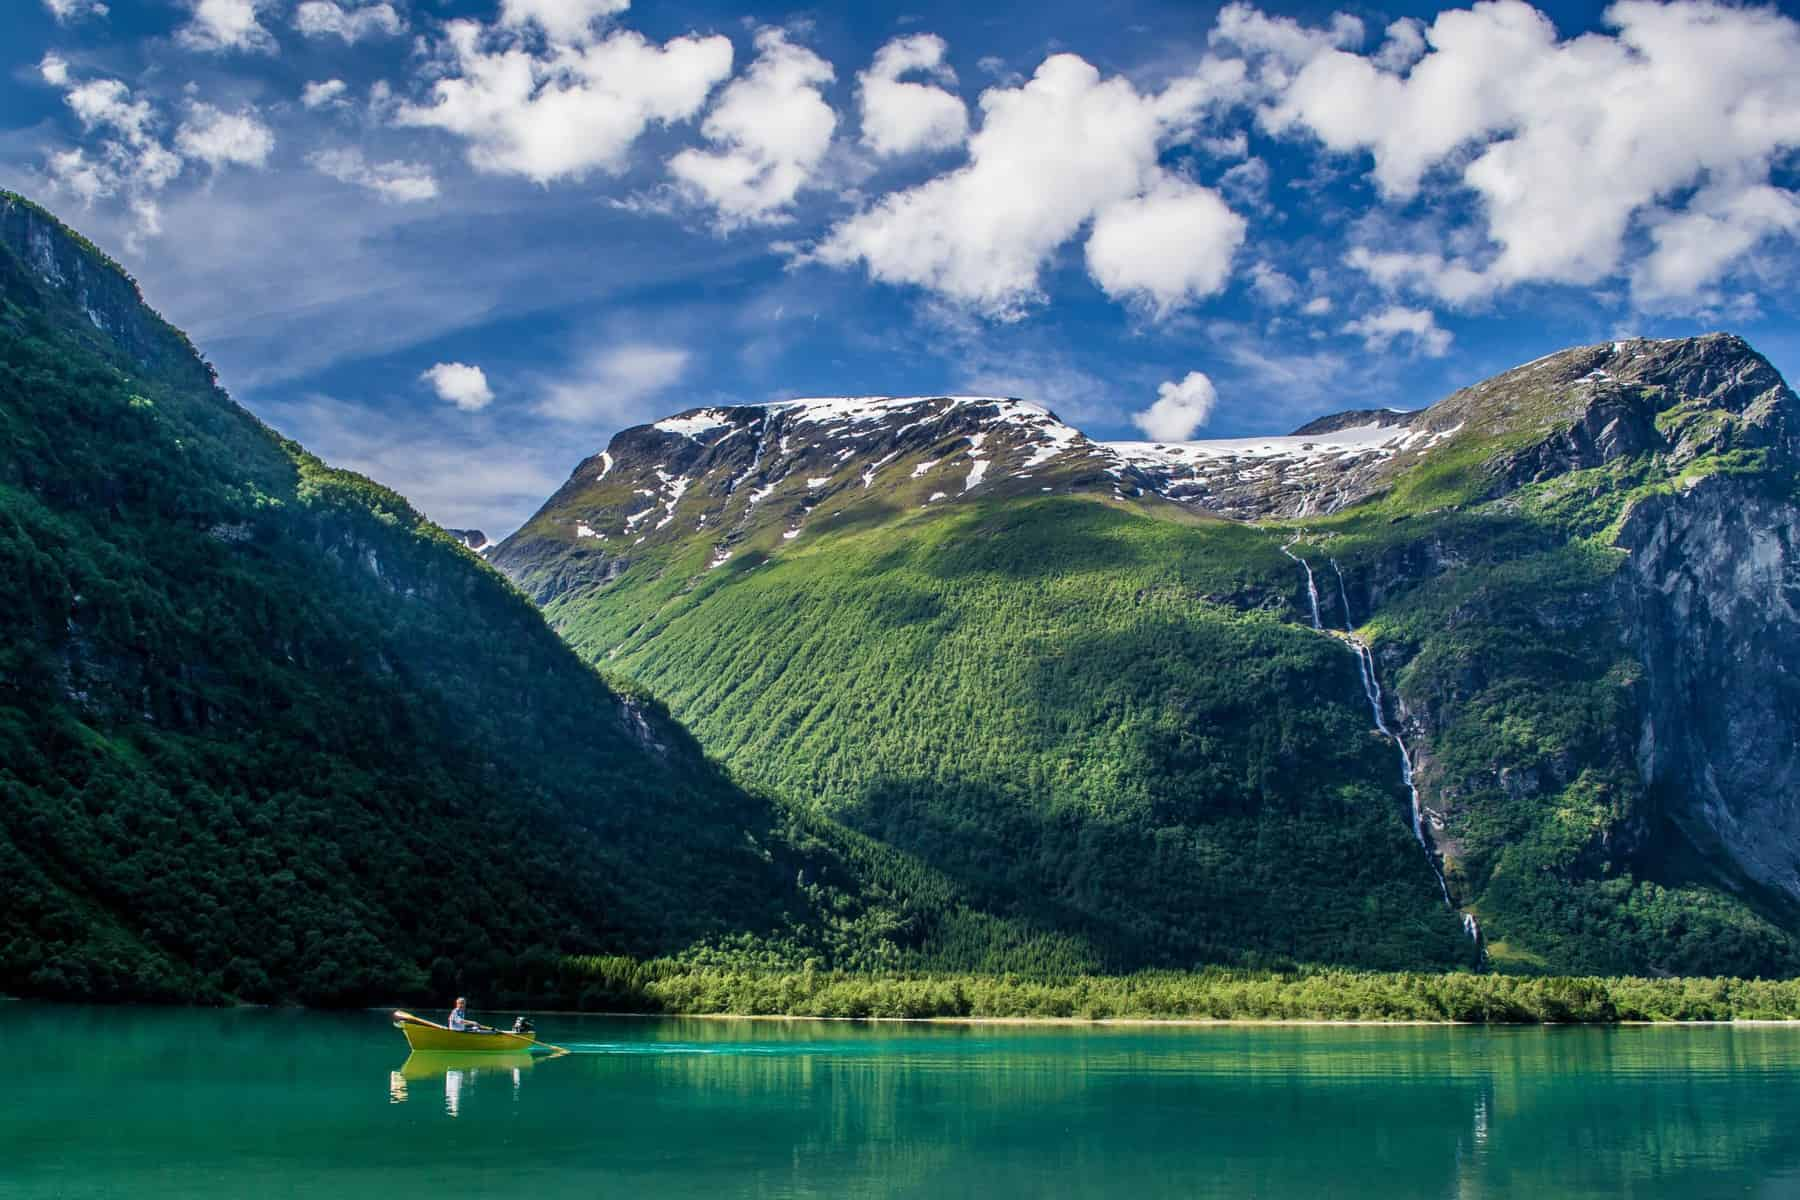 Lodalen Valley and Lovatnet Lake. Photo by Paula Lauberg